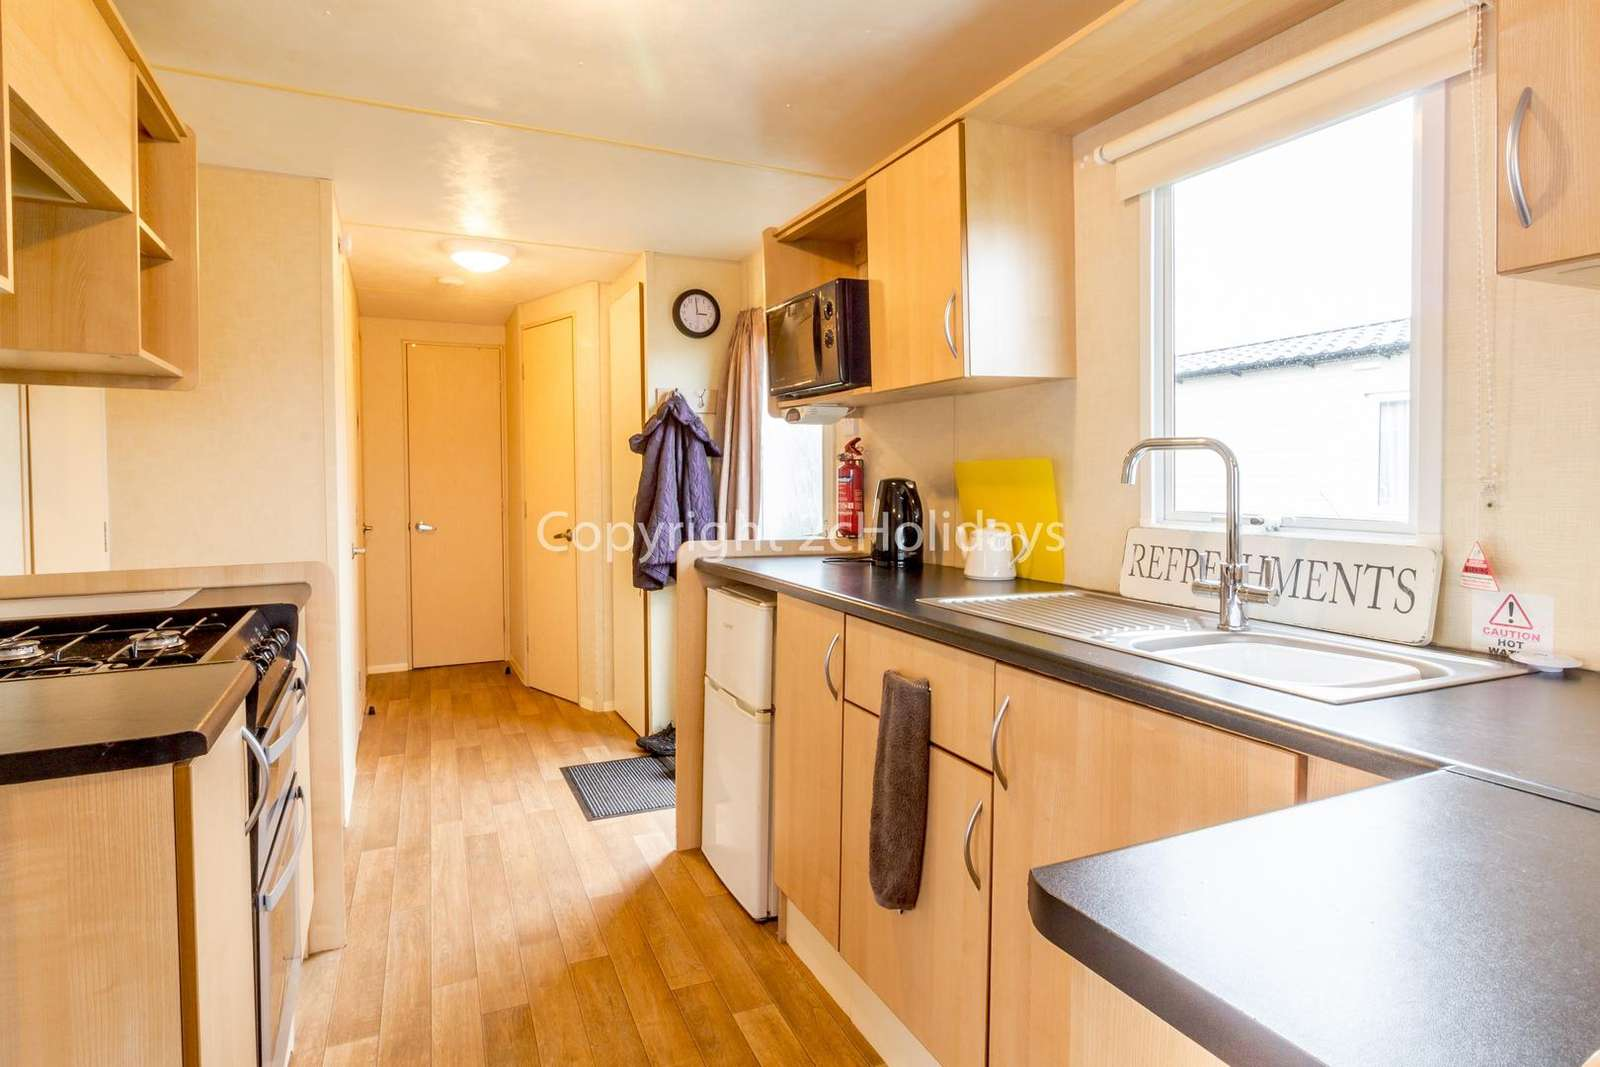 A well equipped kitchen, perfect for self-catering breaks!